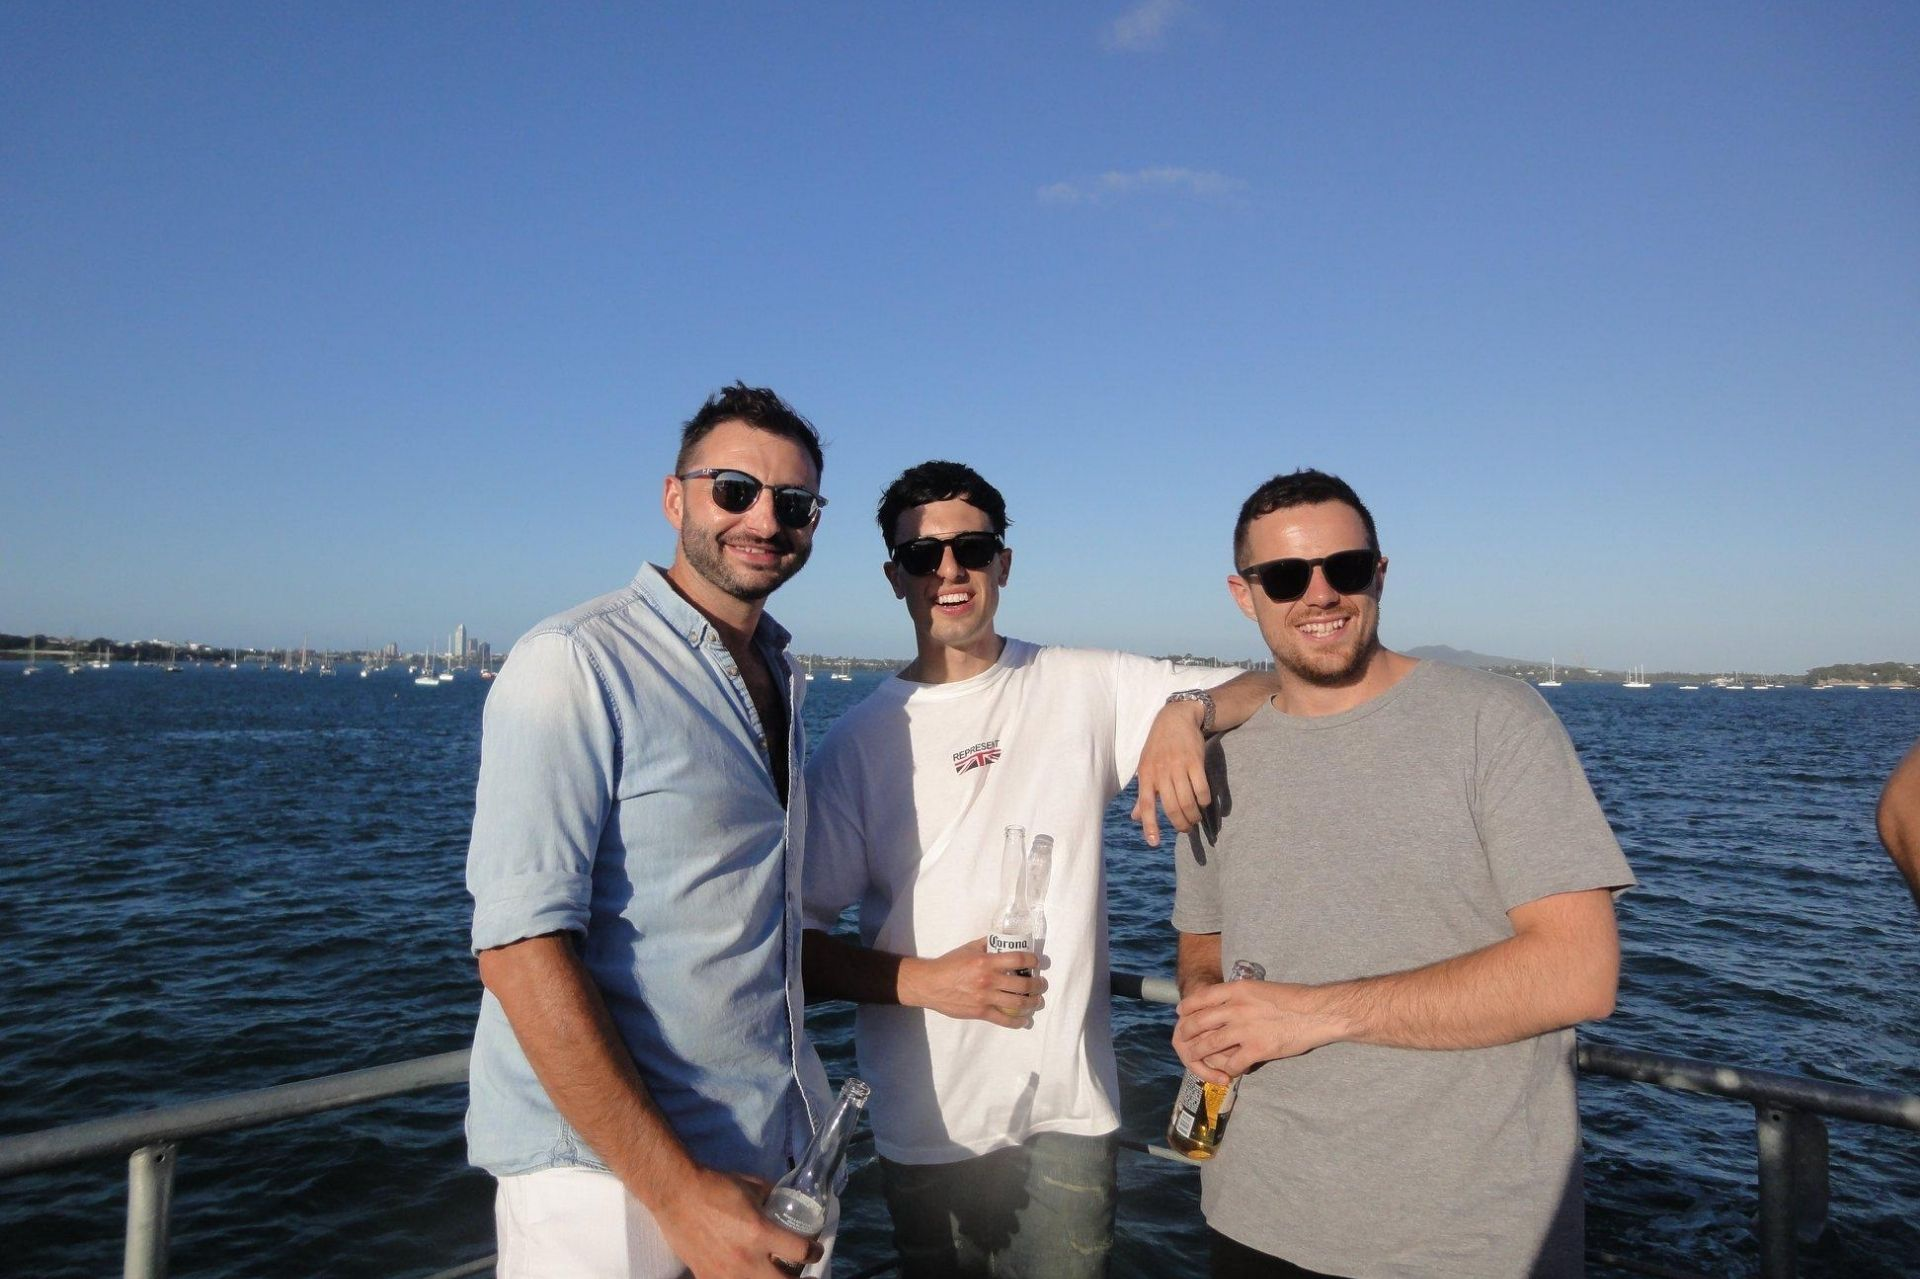 stag party ideas in auckland